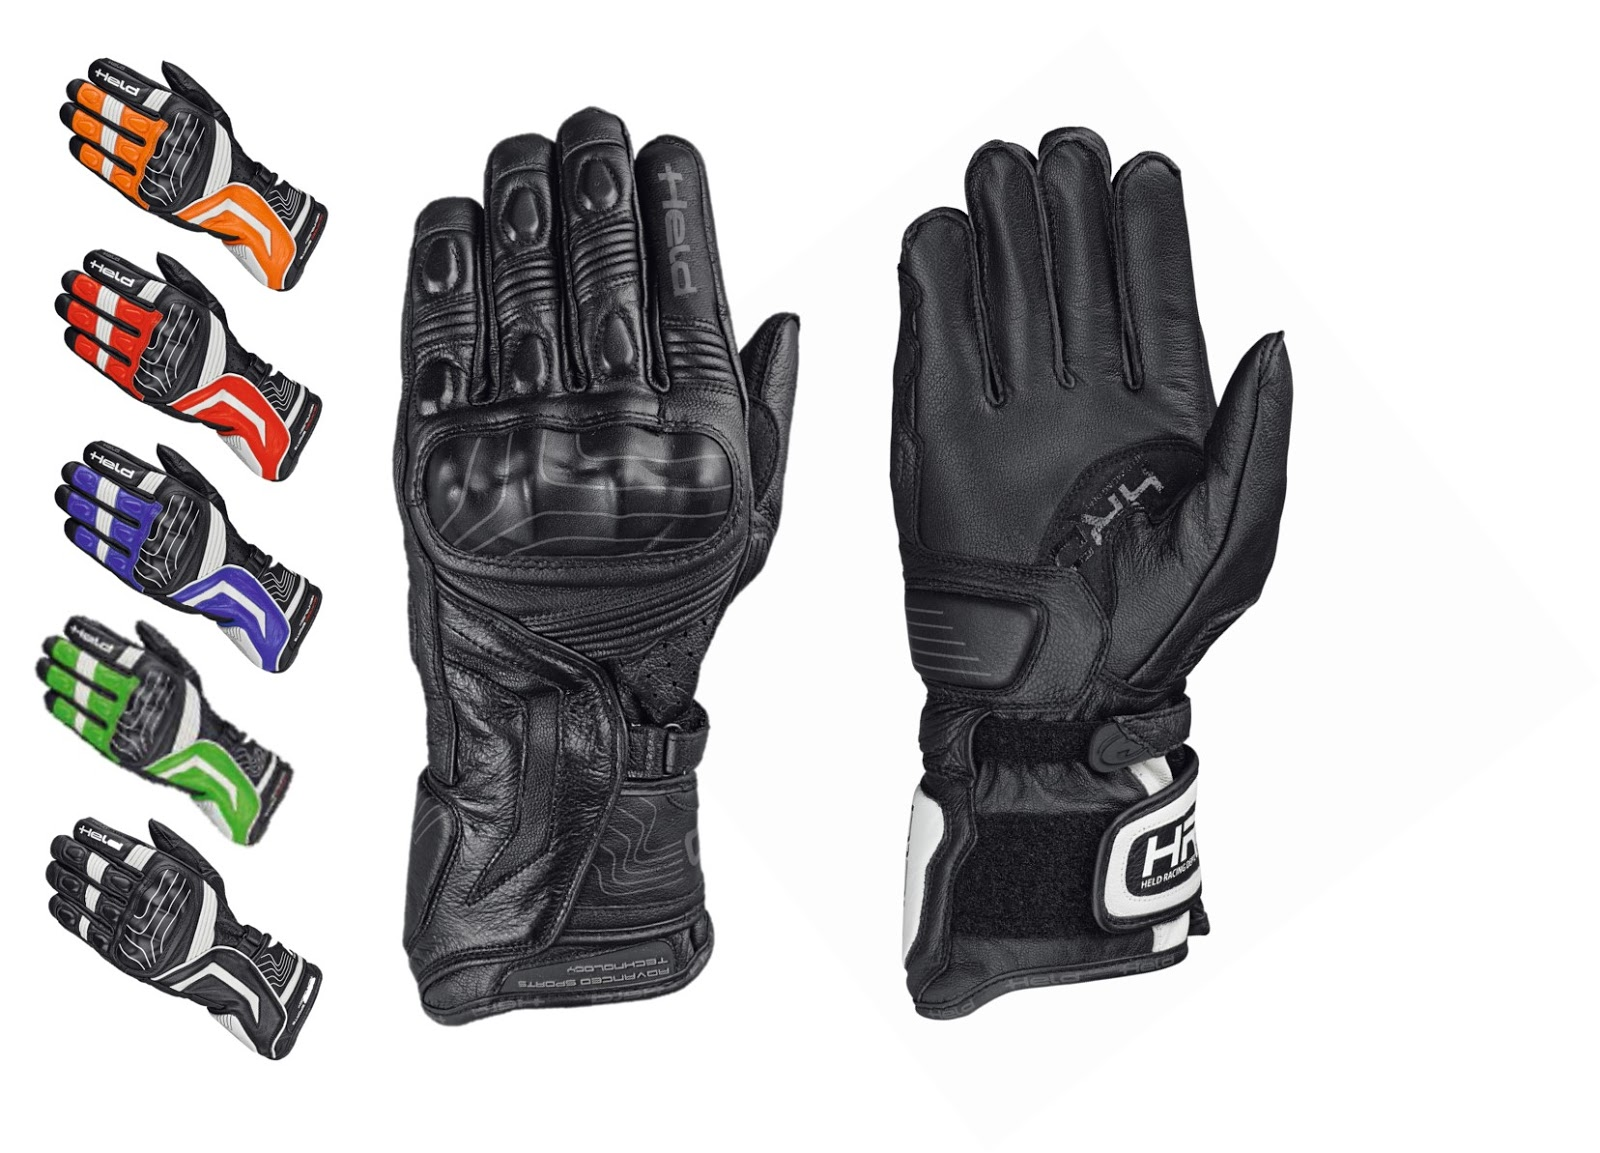 Motorcycle gloves kingston - Held Revel Summer Motorcycle Sports Gloves All The Held Quality For Just 84 99